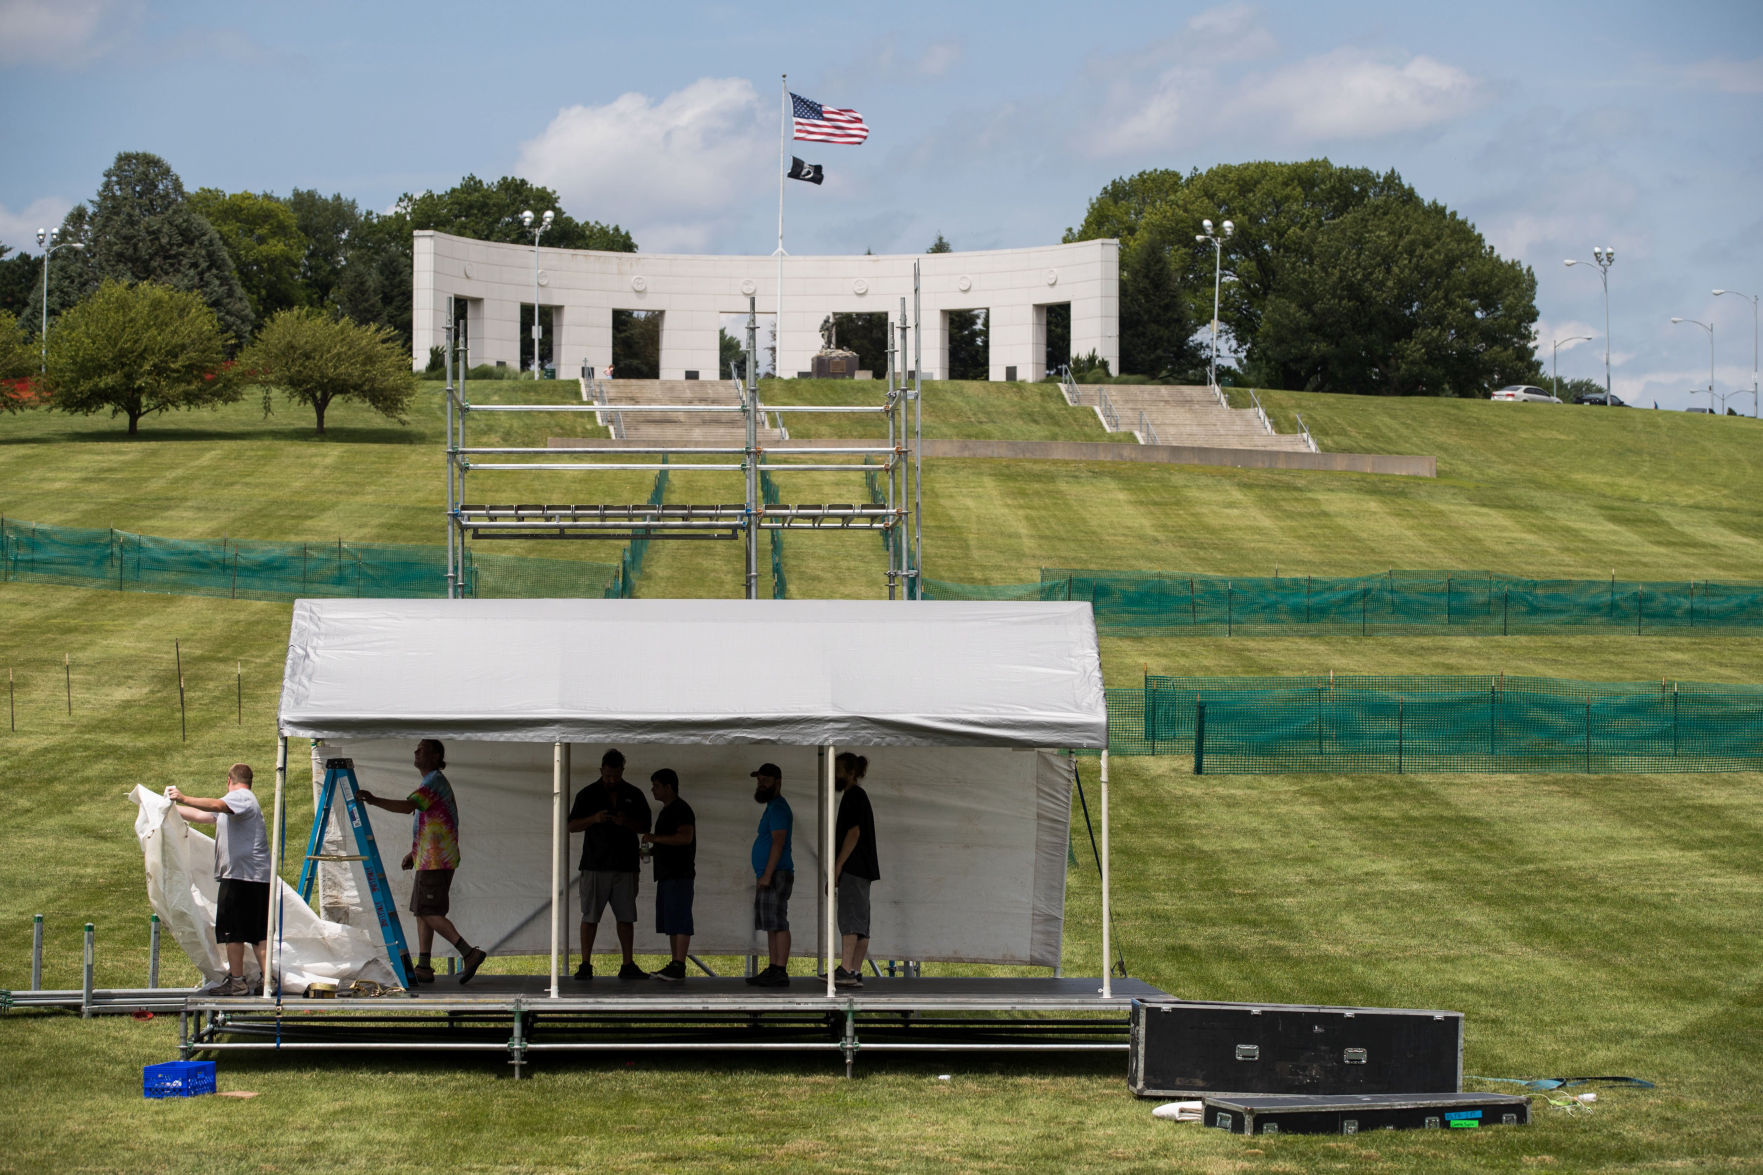 Memorial Park concert prep & Thousands expected to watch fireworks at Omaha World-Herald Bank ...